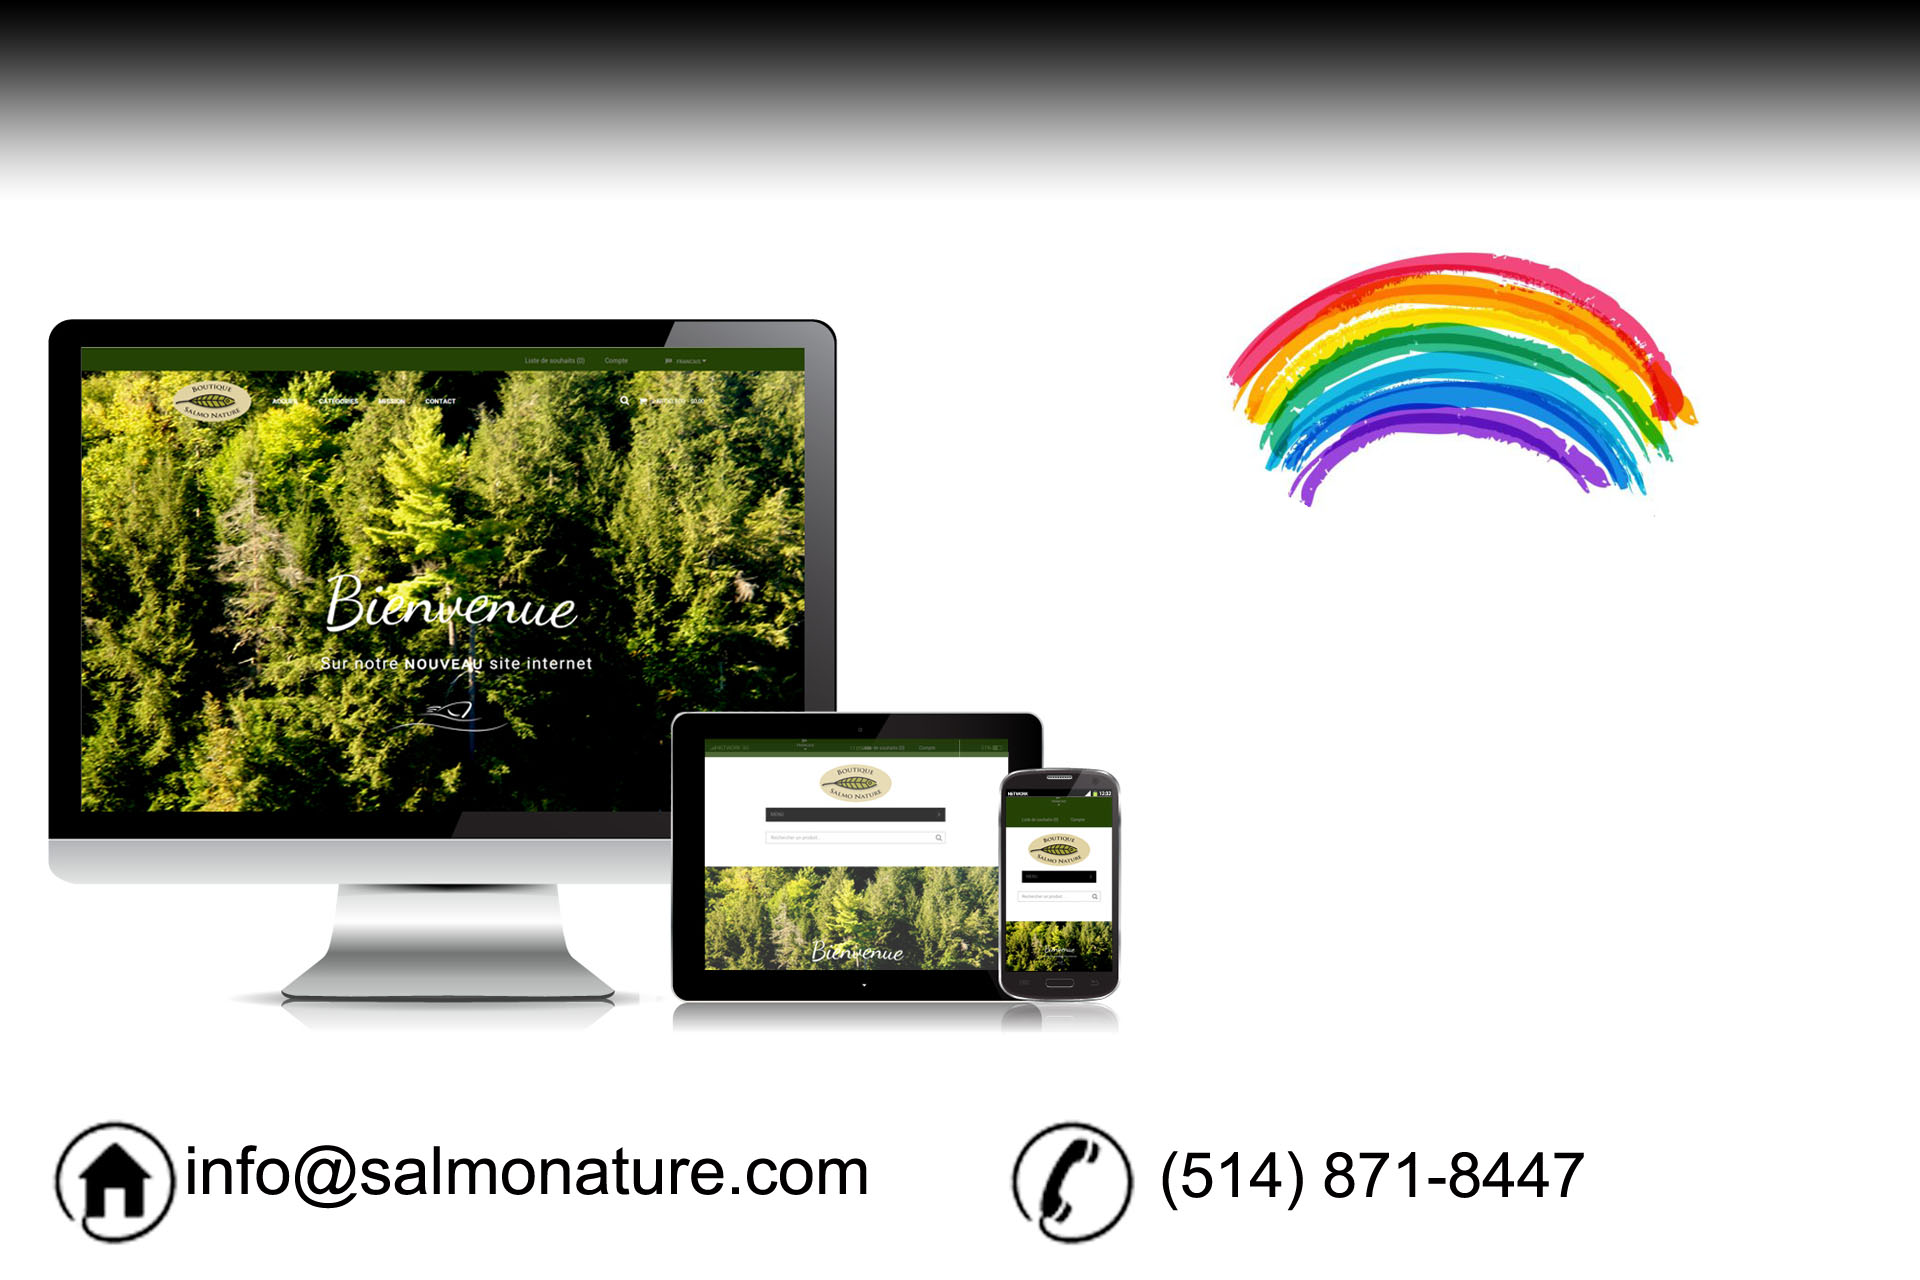 <b>Notice</b>: Undefined index: slider_title in <b>/home/salmo/public_html/cart/catalog/view/theme/default/template/module/kuler_layer_slider.tpl</b> on line <b>45</b>